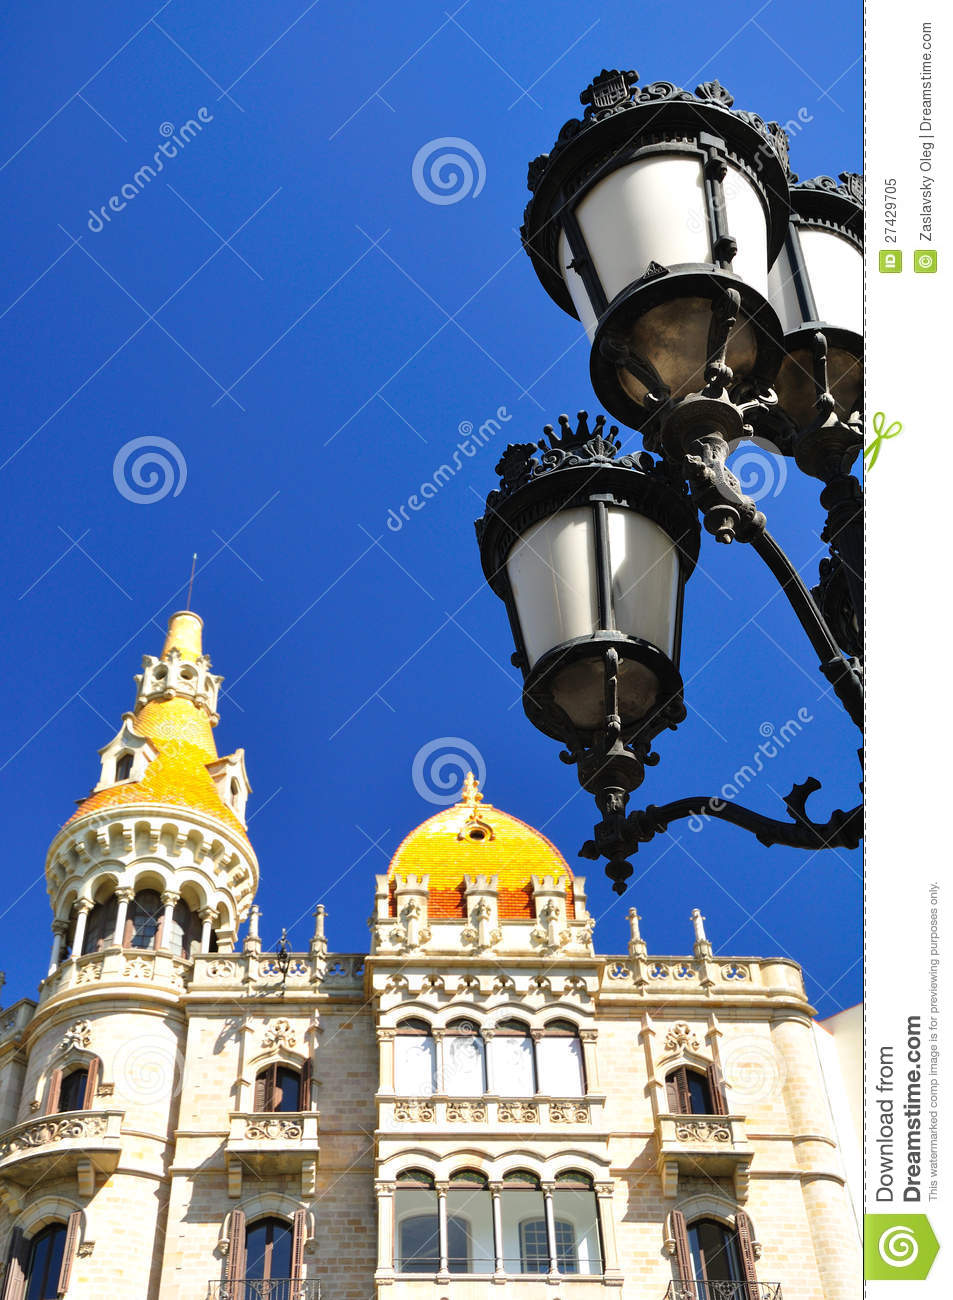 Barcelona fragment royalty free stock photo image 27429705 - Fragments bcn ...